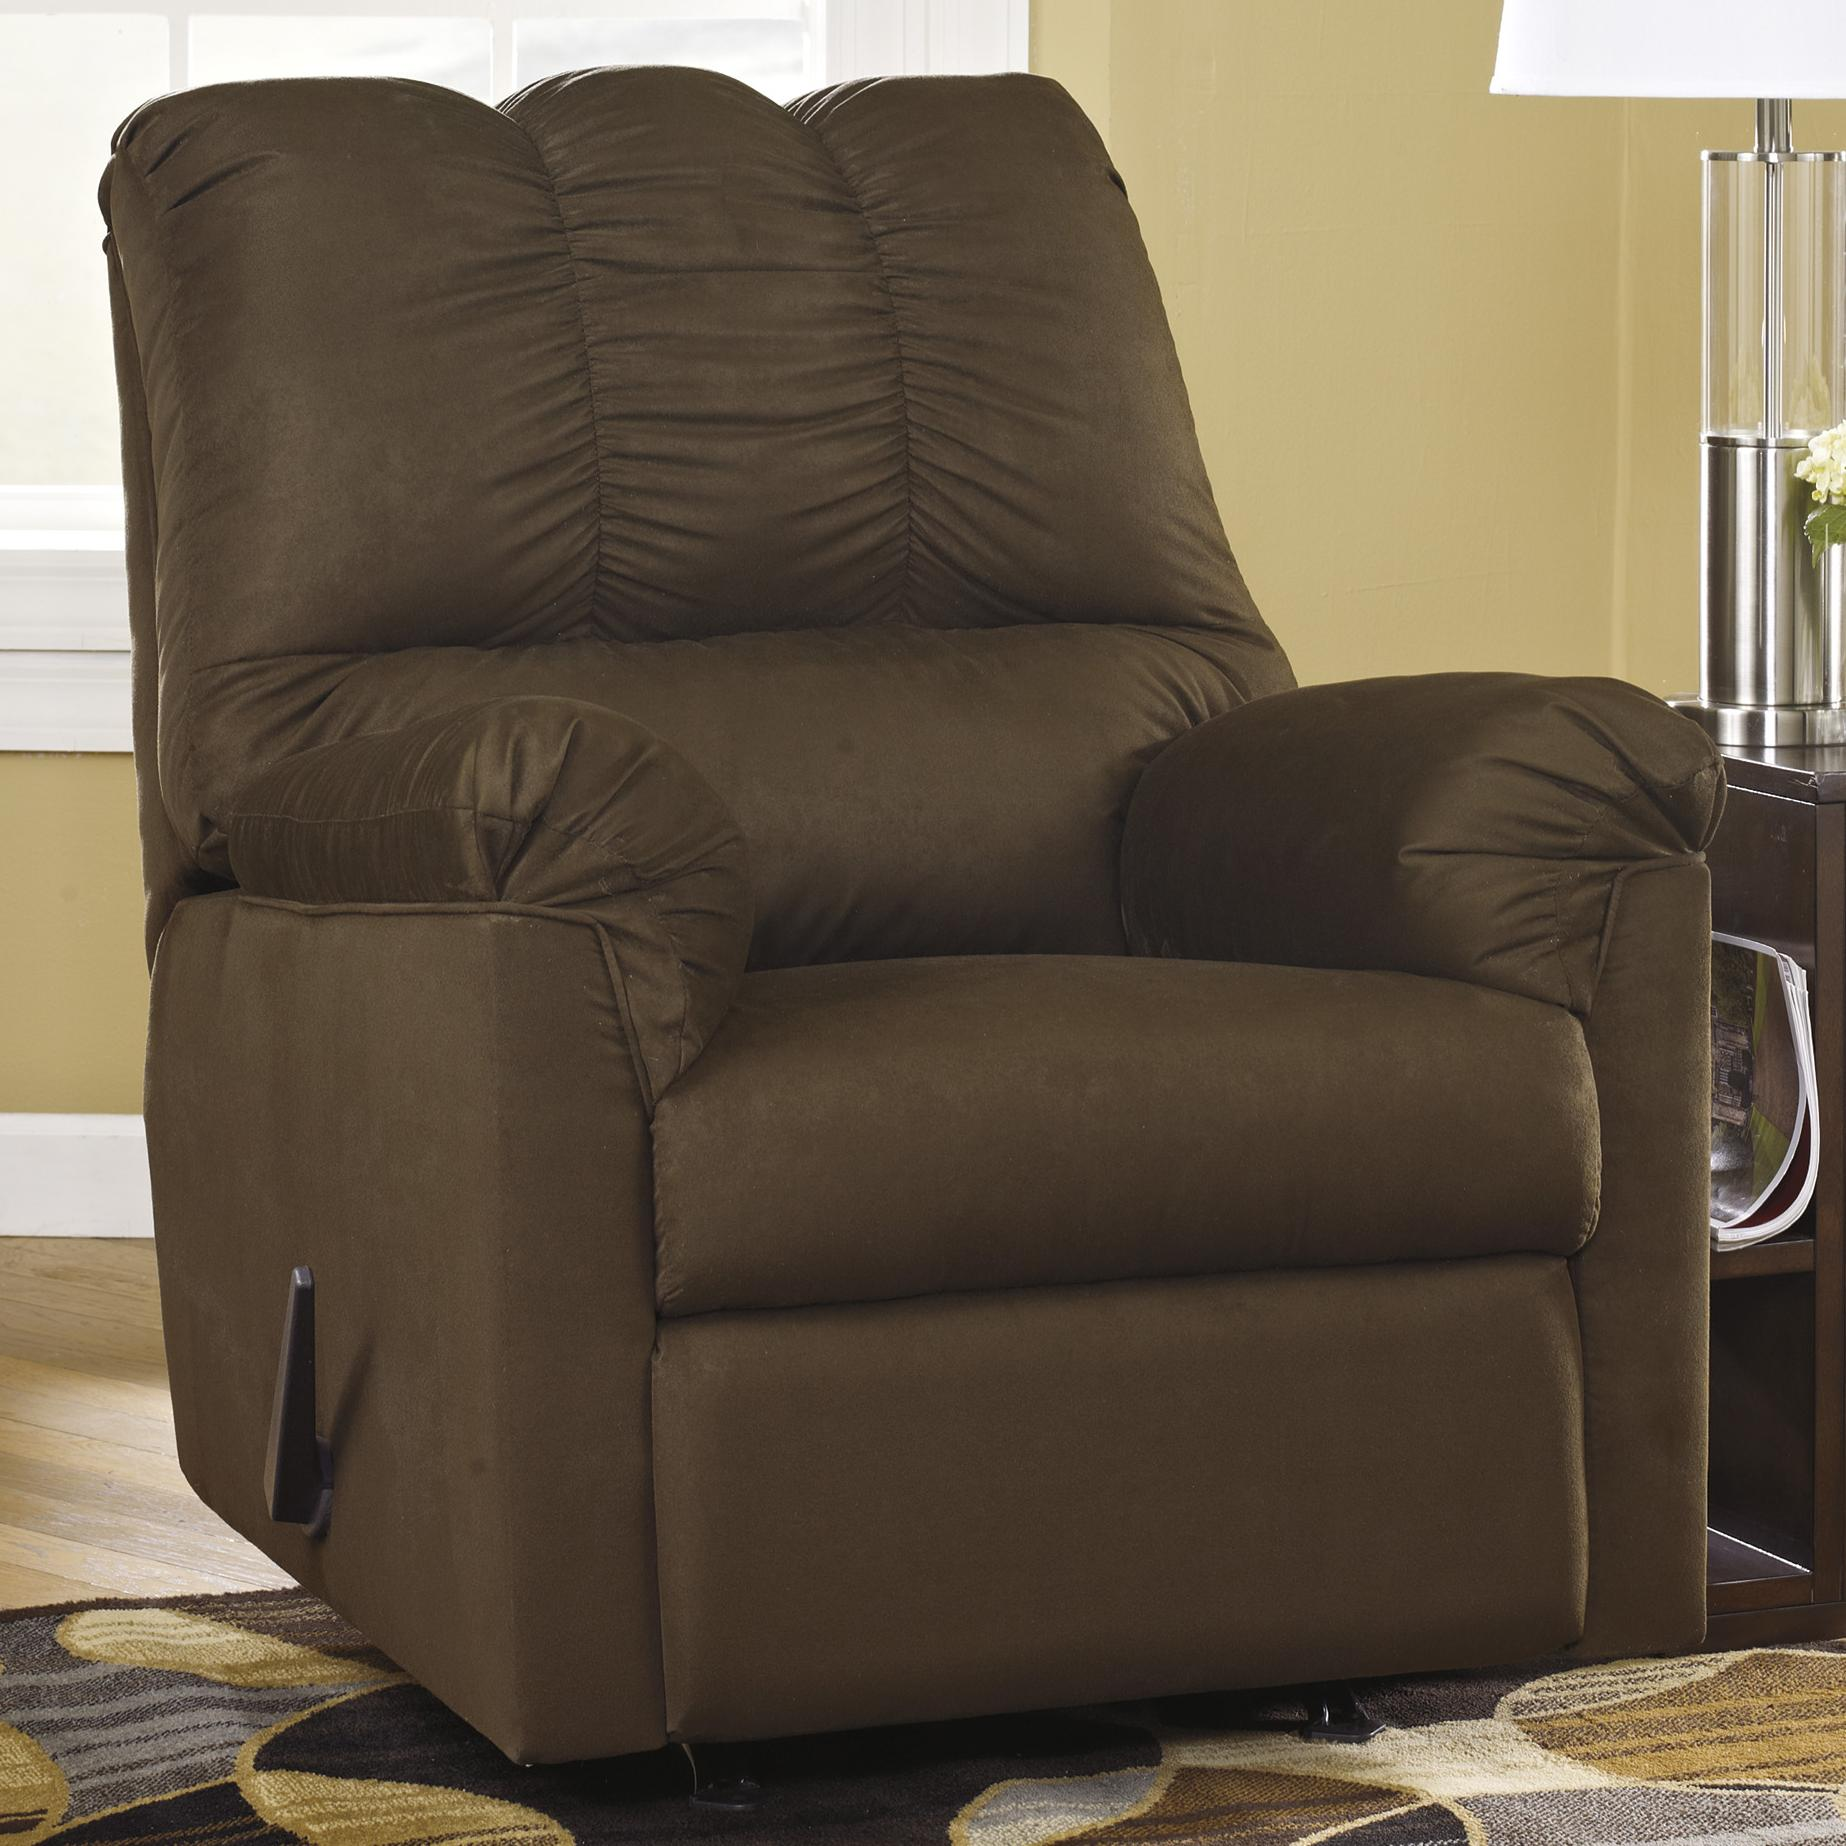 Signature Design by Ashley Darcy Cafe Rocker Recliner